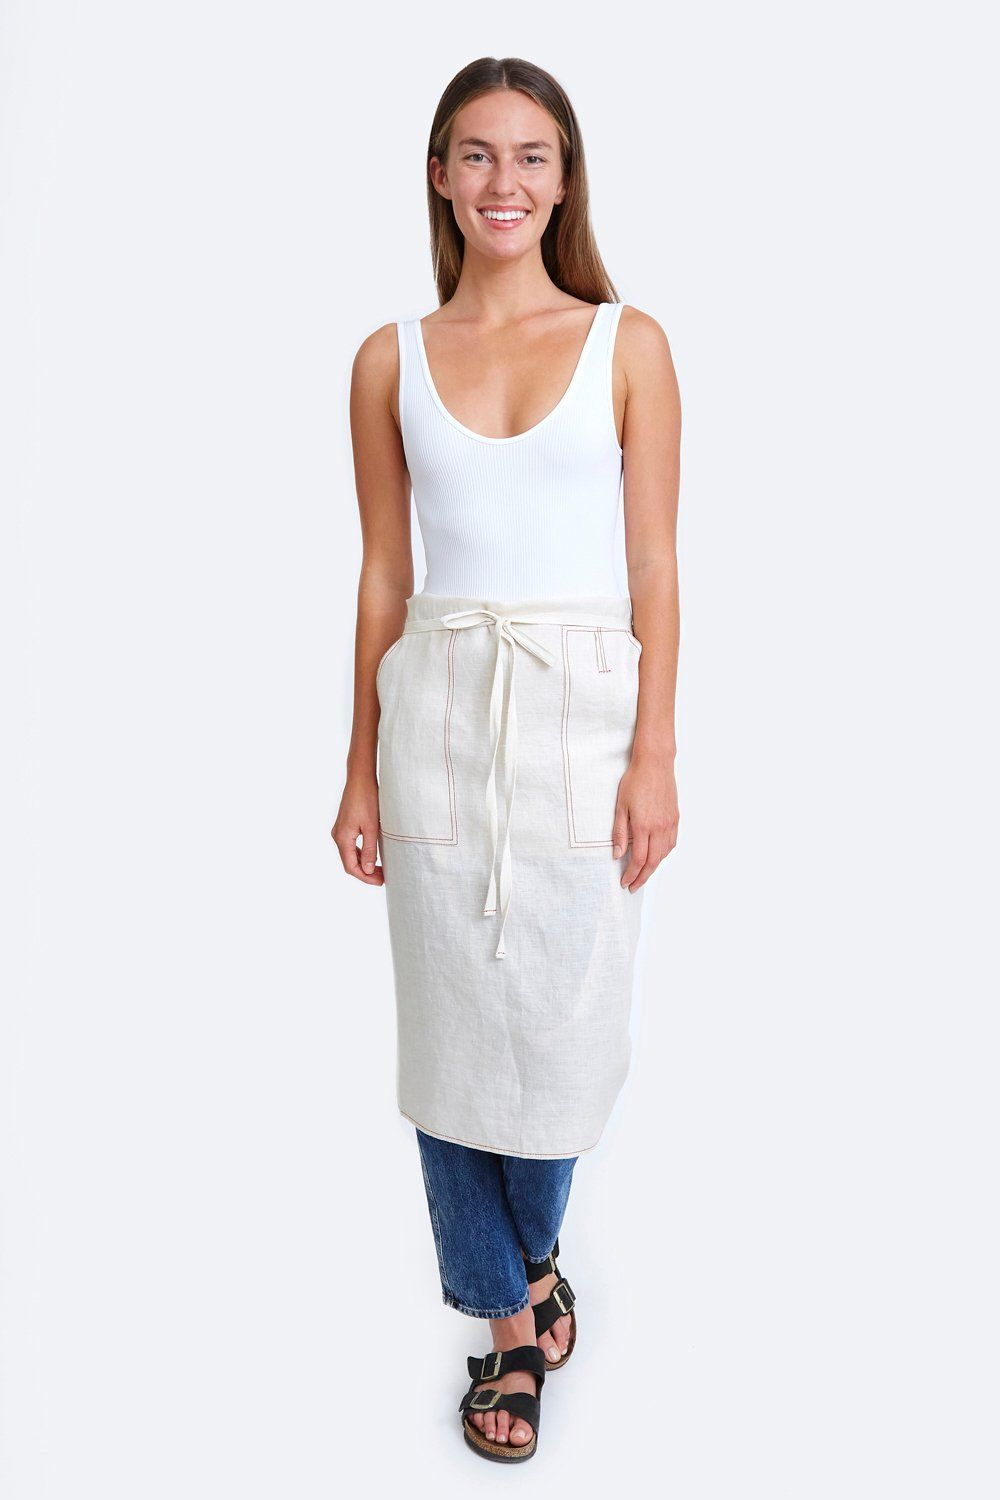 Natural White Linen Apron